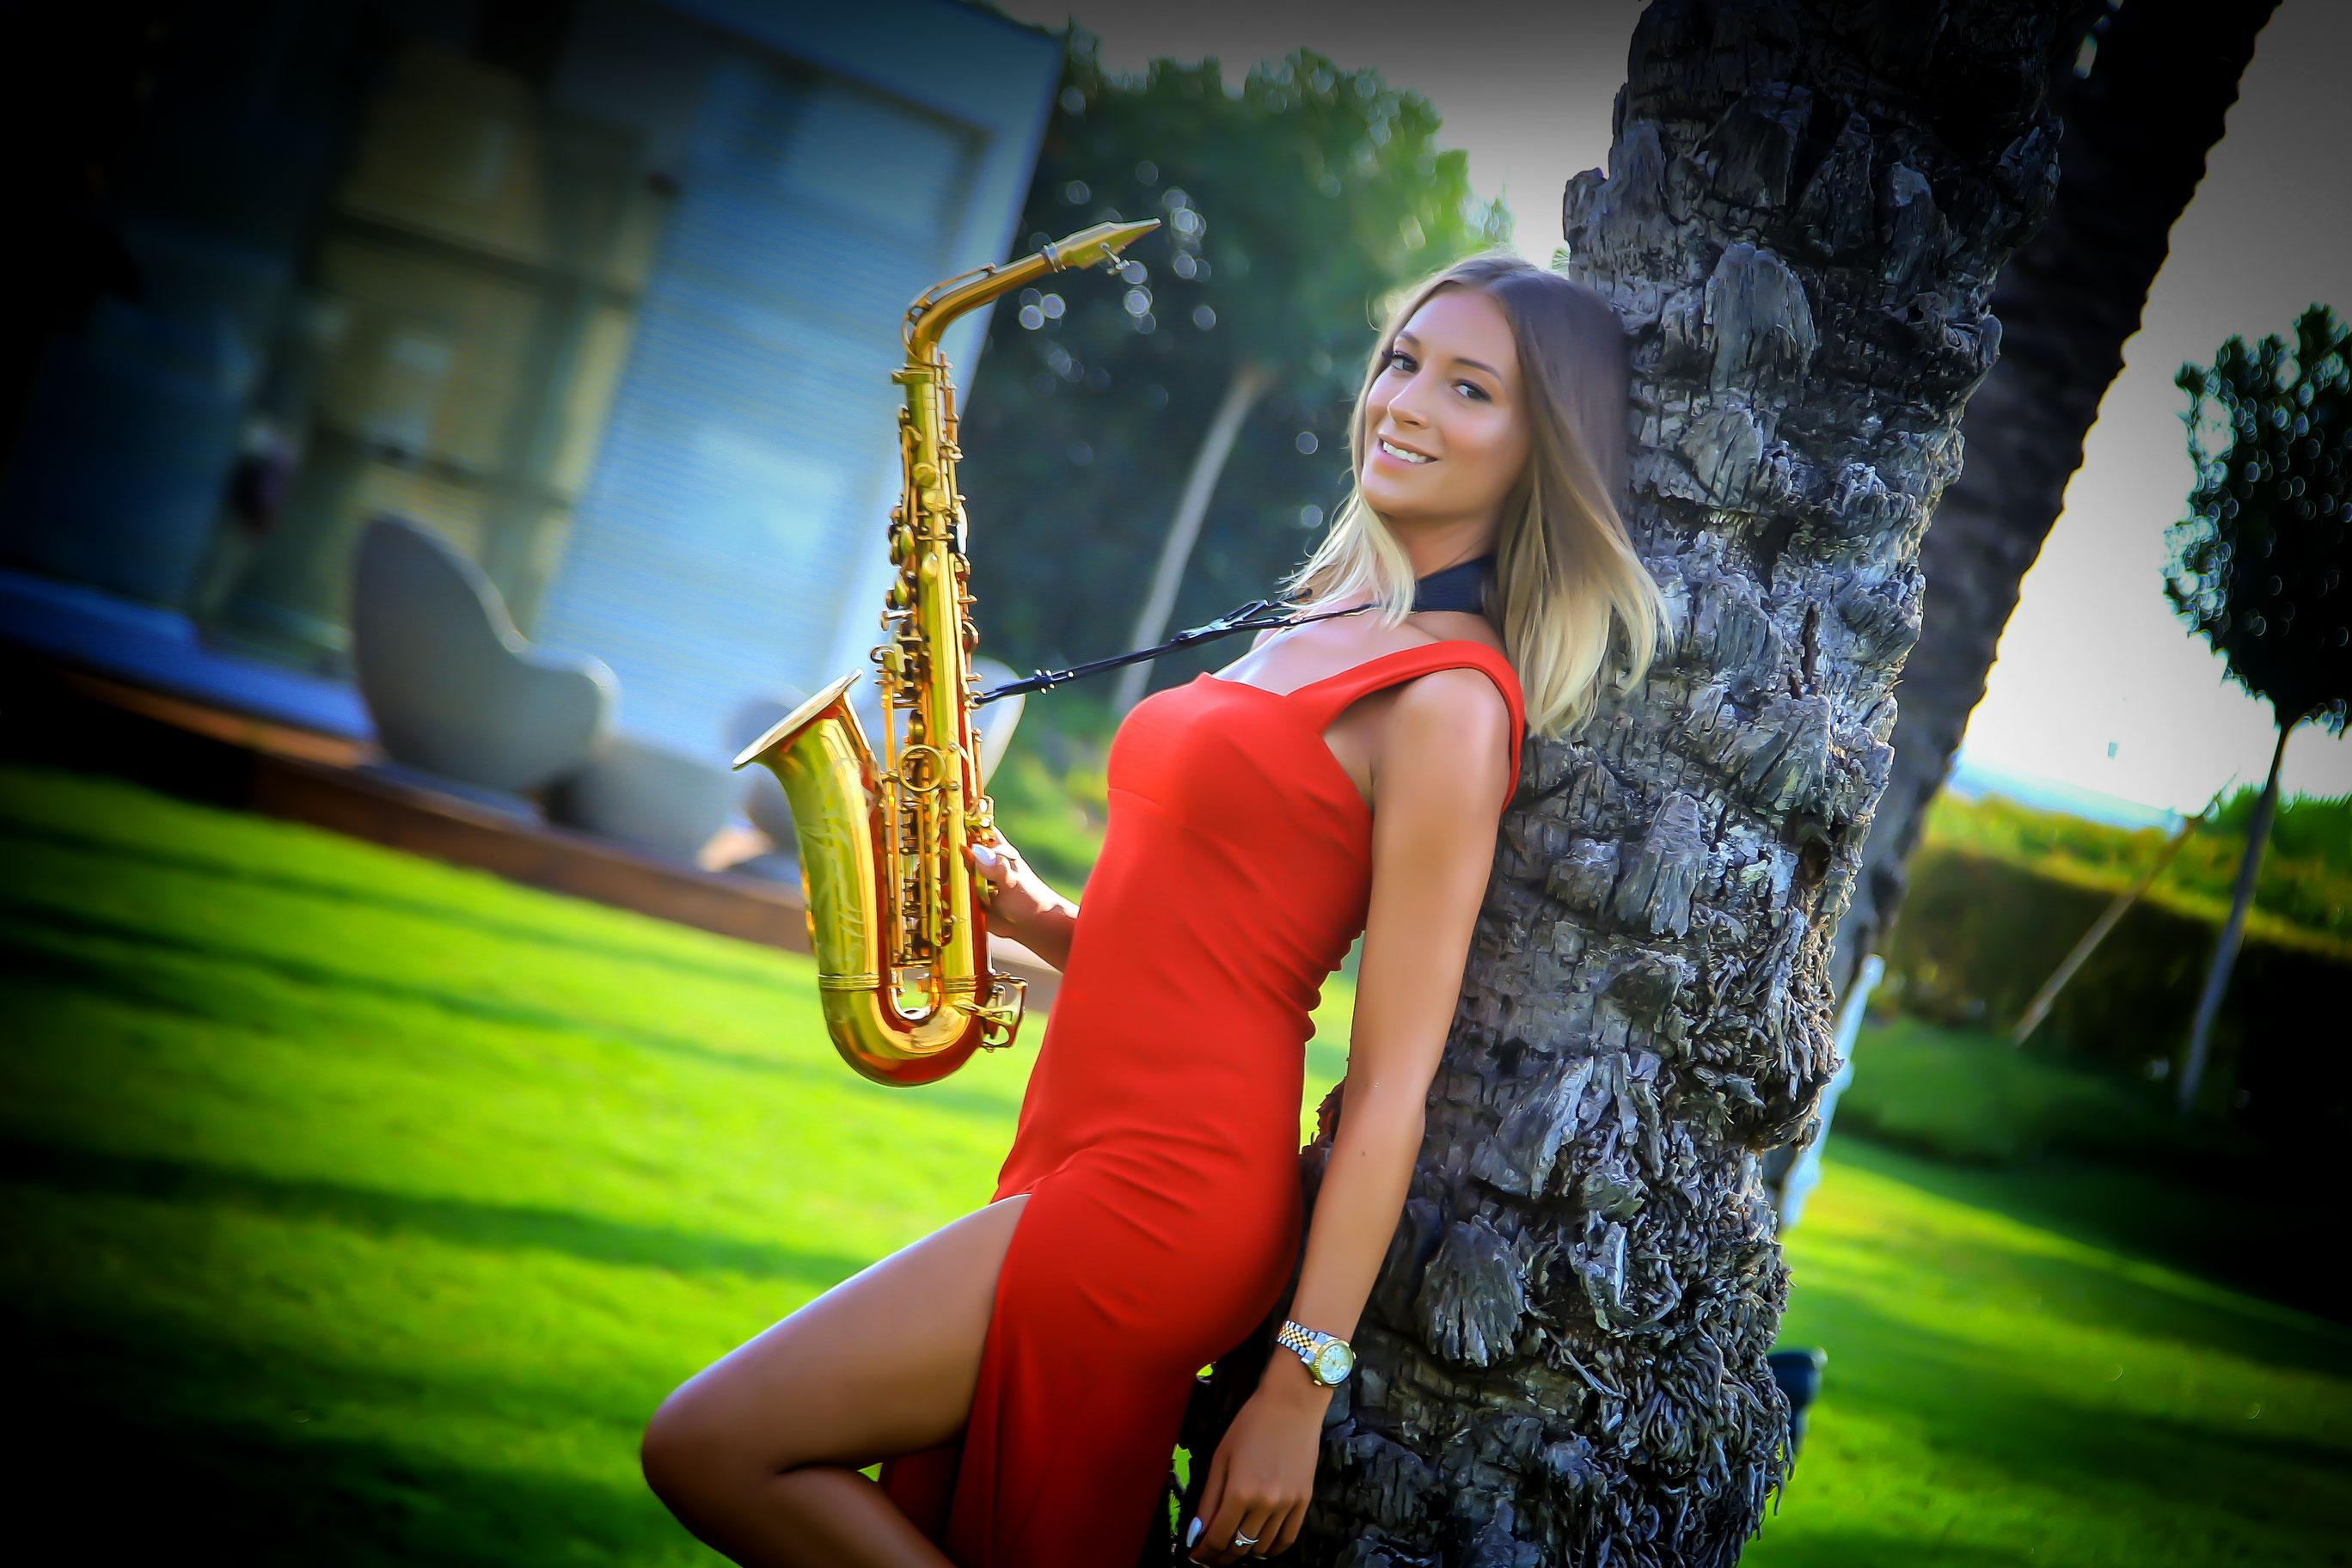 Saxophonisting_Isabella_Romme_Firmenevent_Party_Live_Band_Saxophonistin_